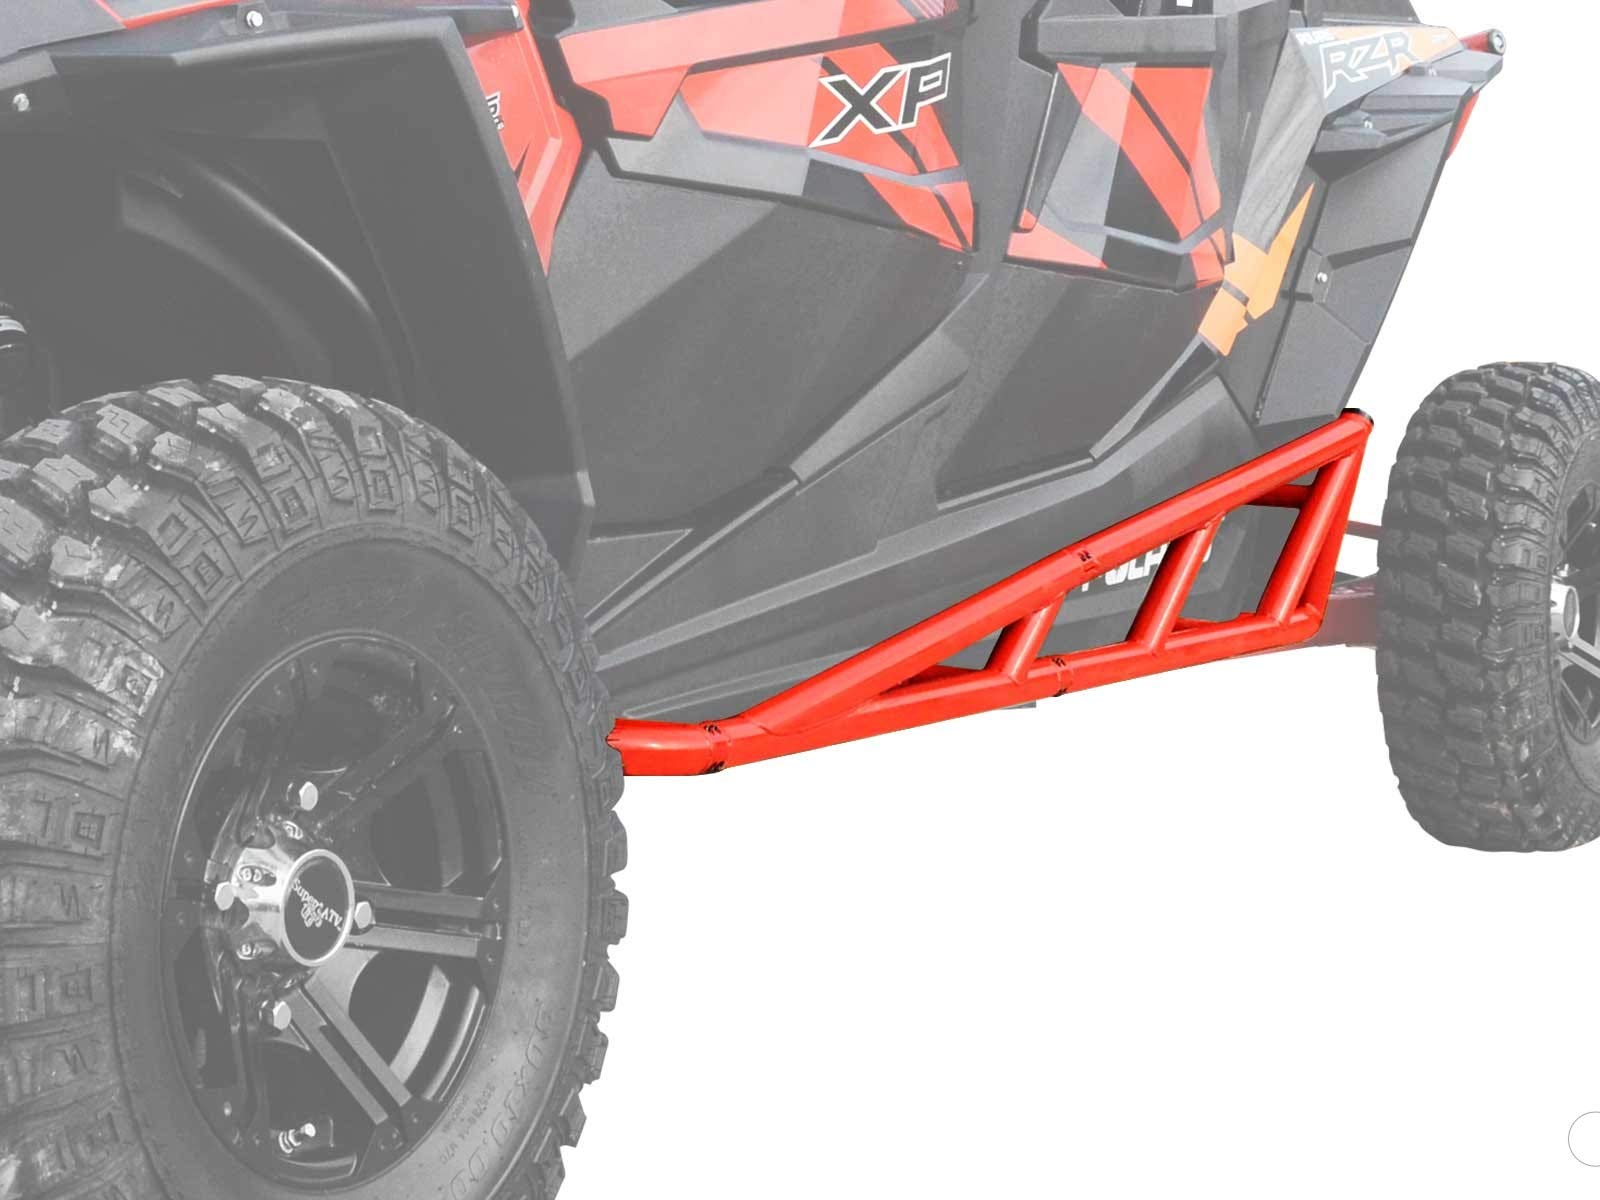 SuperATV Nerf Bars/Tree Kickers/Rock Sliders for Polaris RZR XP 4 Turbo (2016+) - Red - Compatible With Our Full Protection Kit!